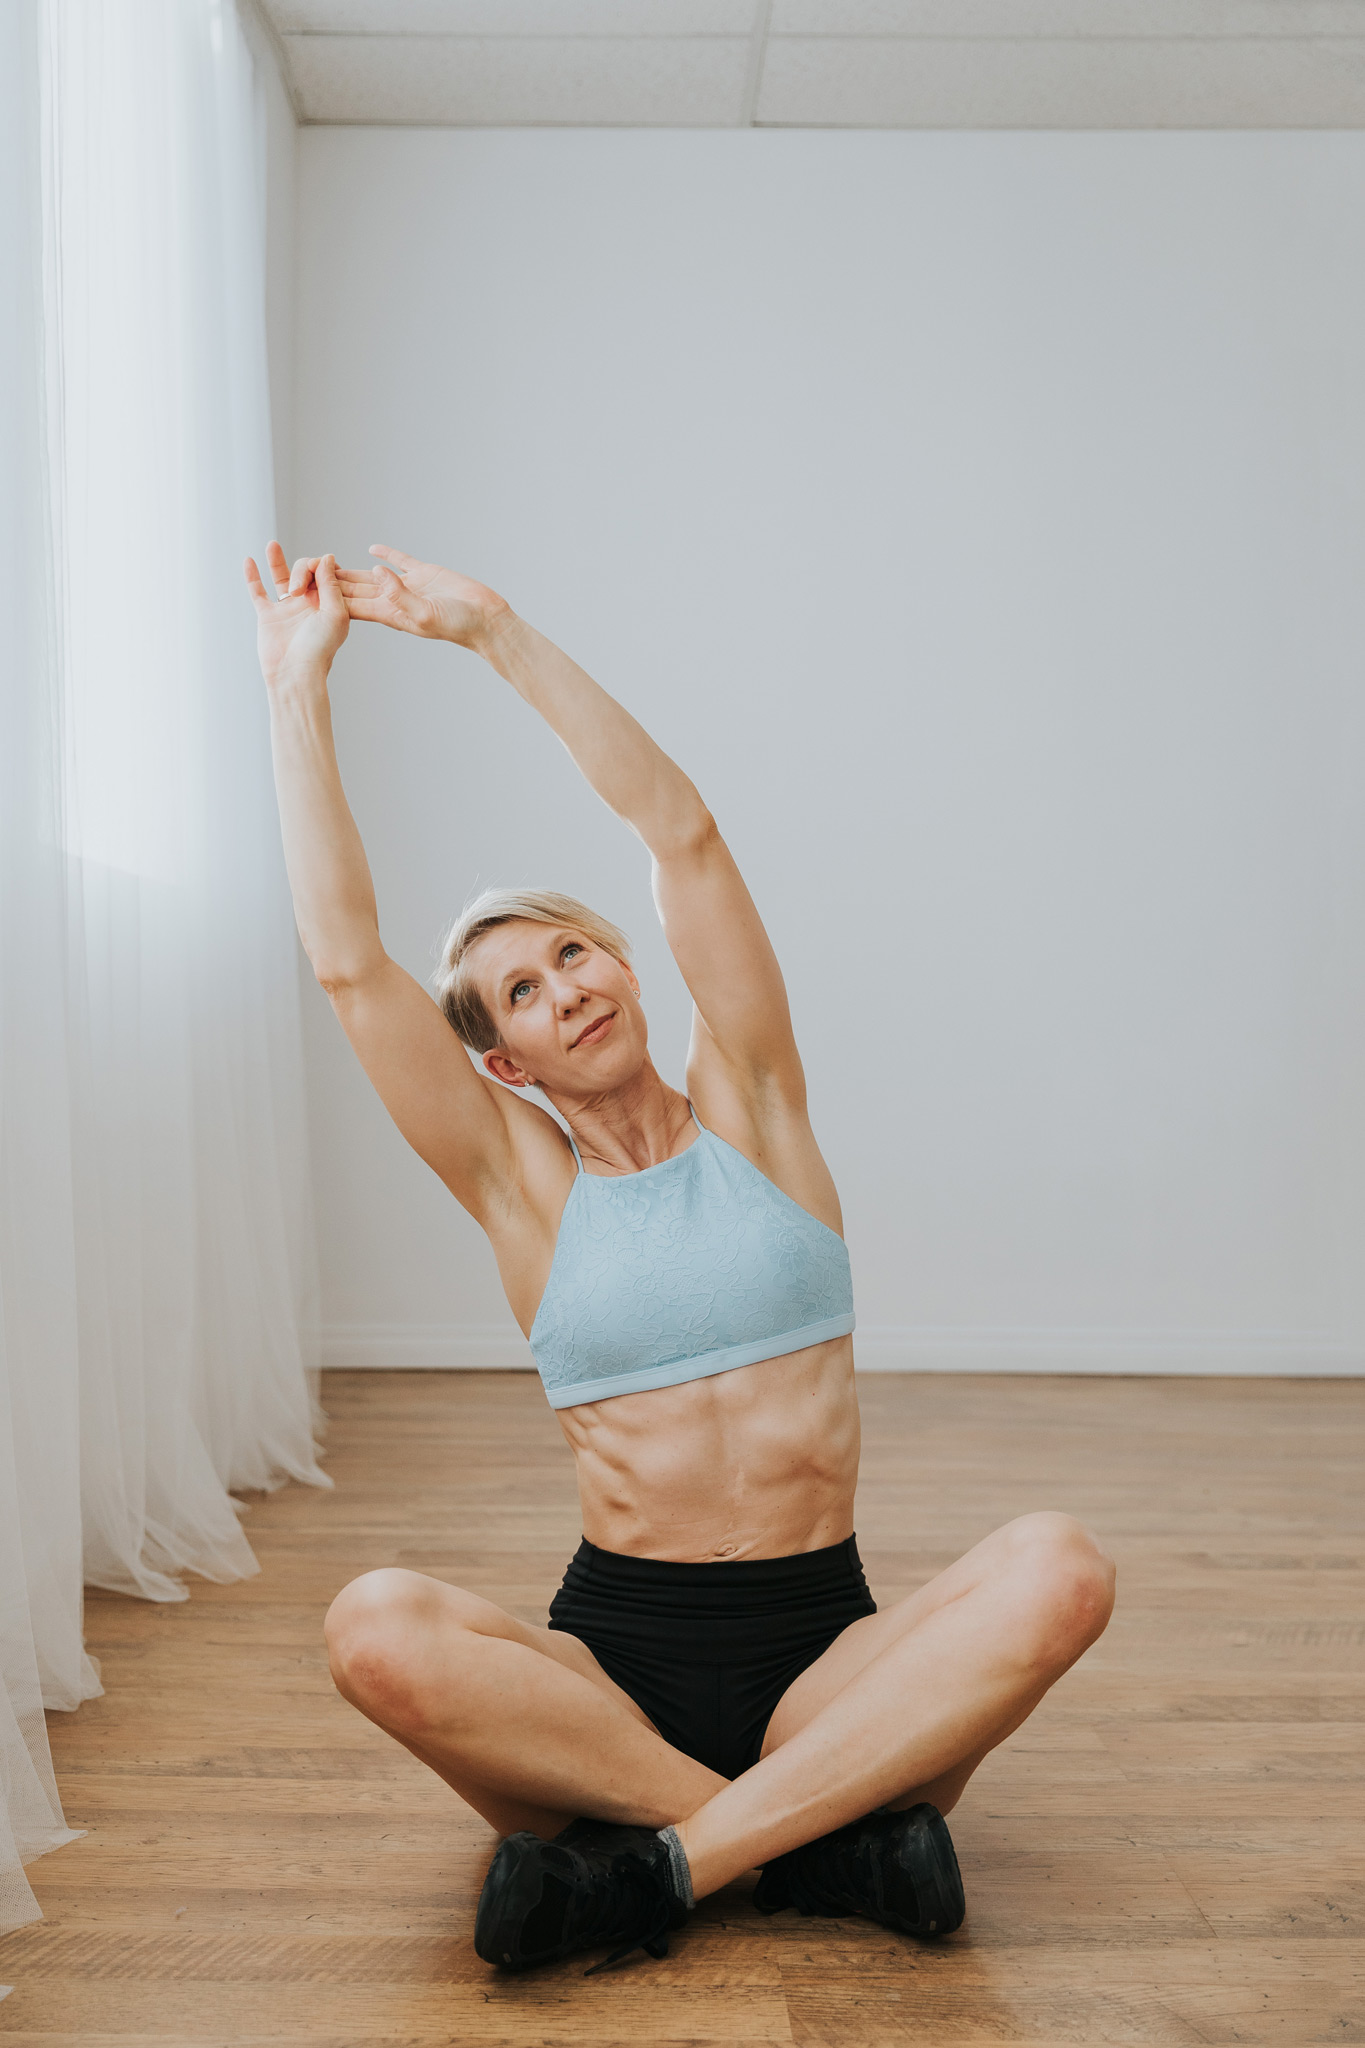 woman sitting cross legged and stretching arms leaning